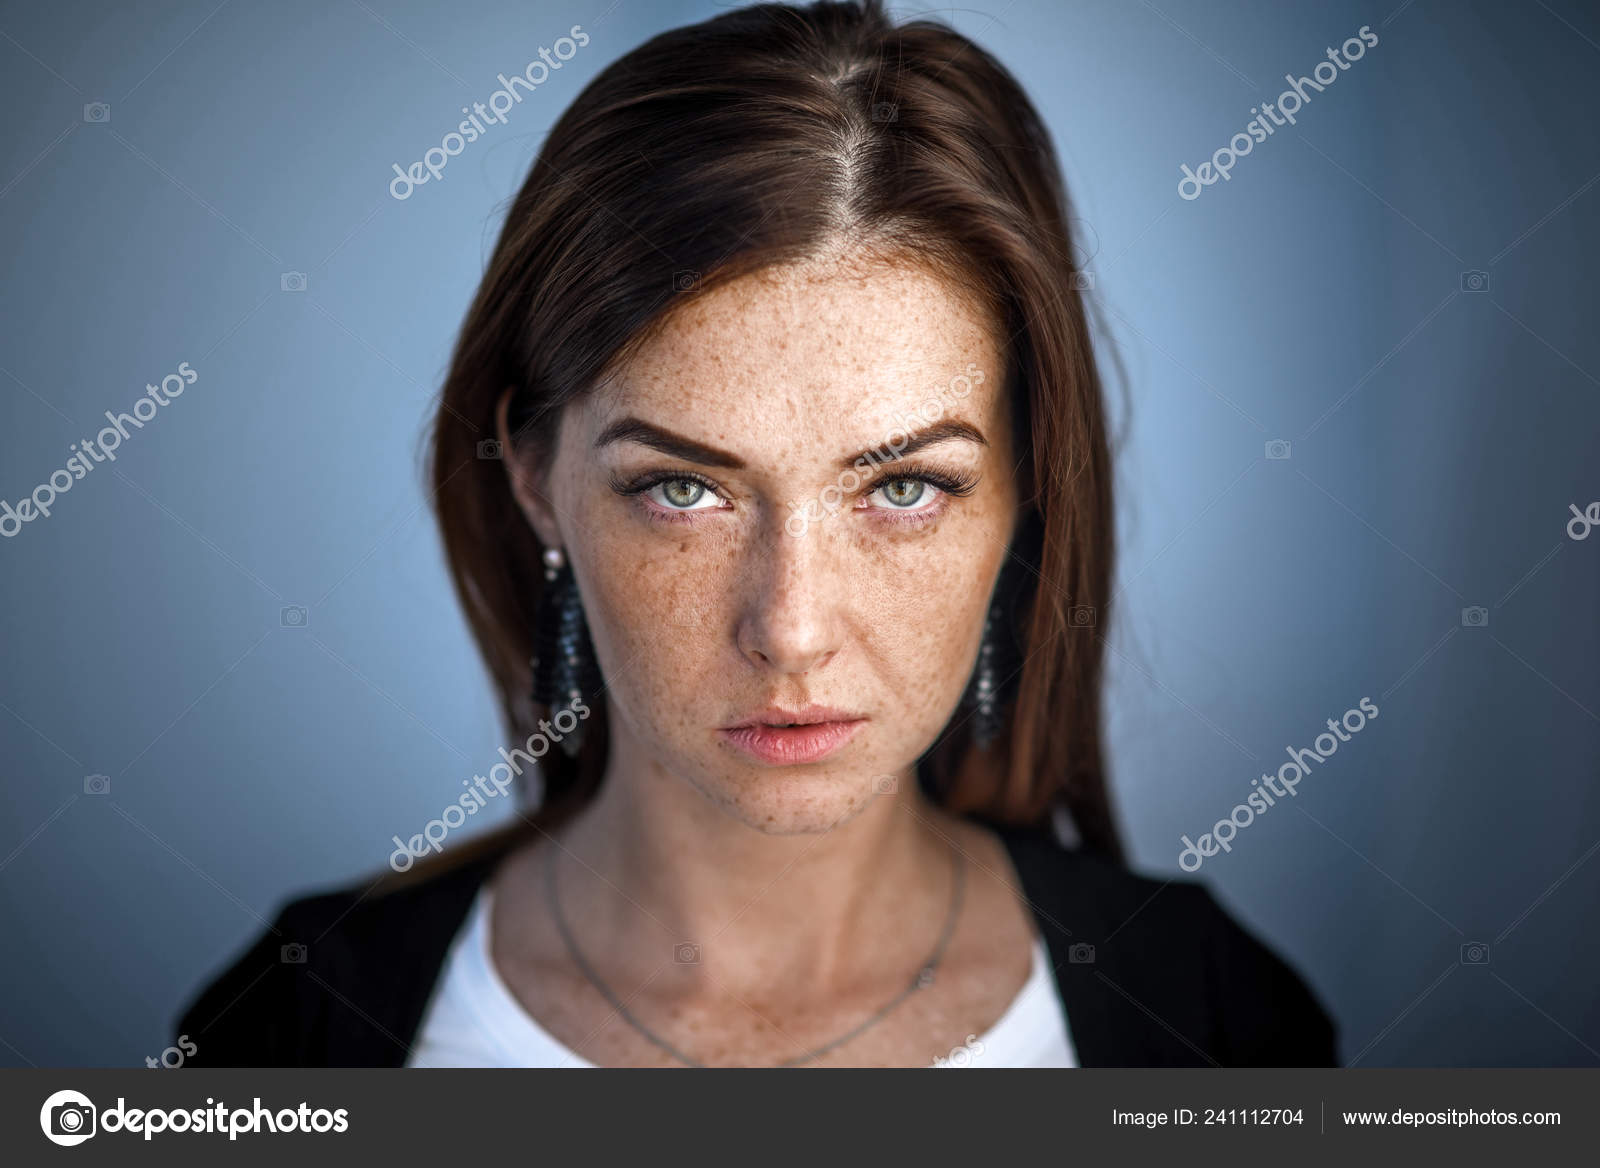 Cute Redhead Girl Looks Into The Camera Modern Girl In An Urban Environment Freckles Face Stock Photo C Cinematheart Gmail Com 241112704